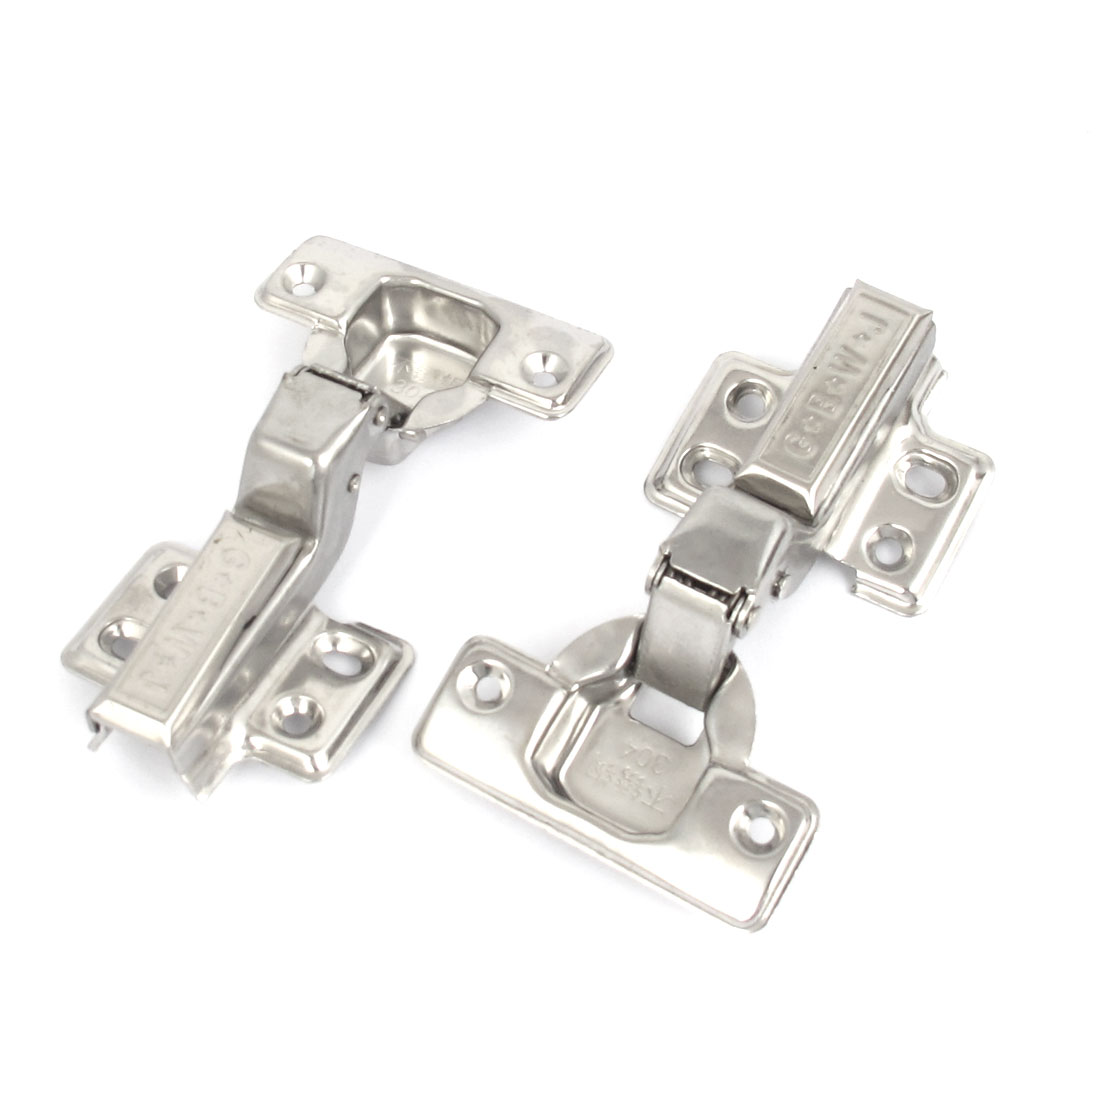 2pcs Kitchen Cabinet Hydraulic Self Close Concealed Inset Hinge Hardware 110mm